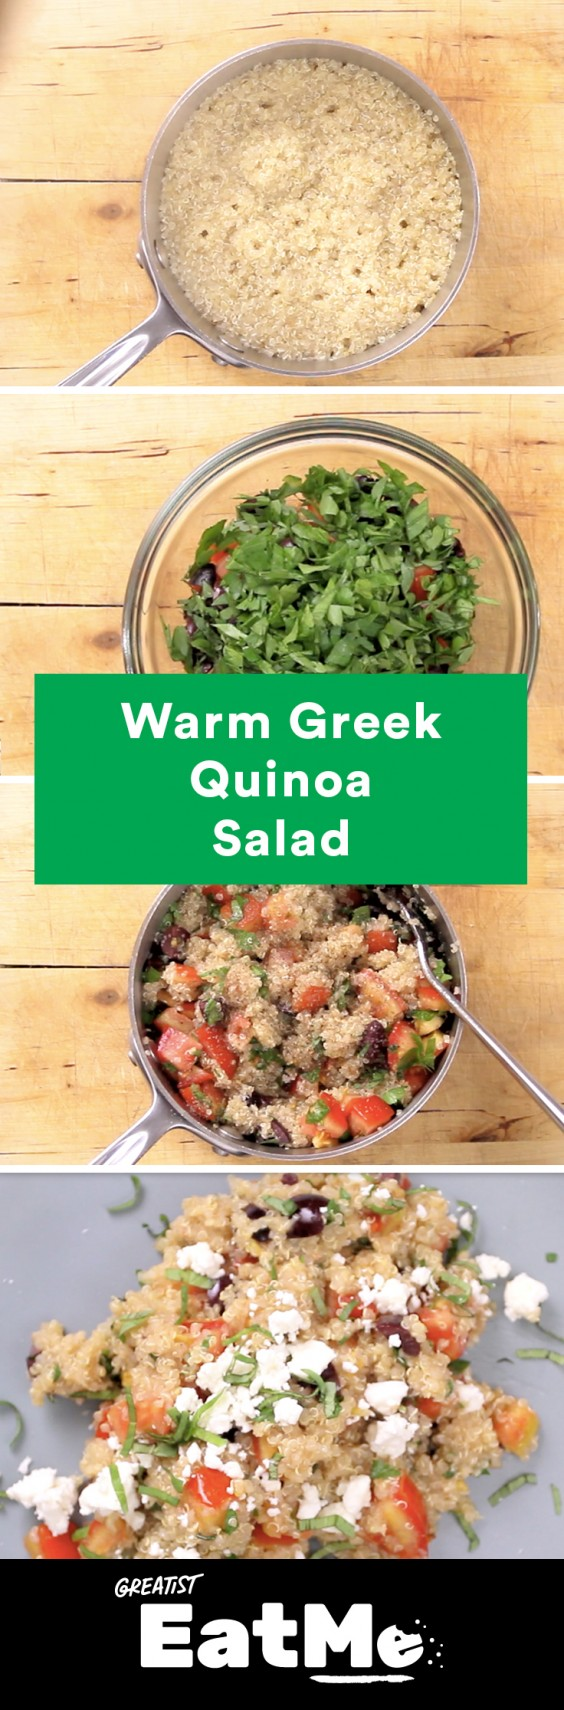 Eat Me Video: Greek Quinoa